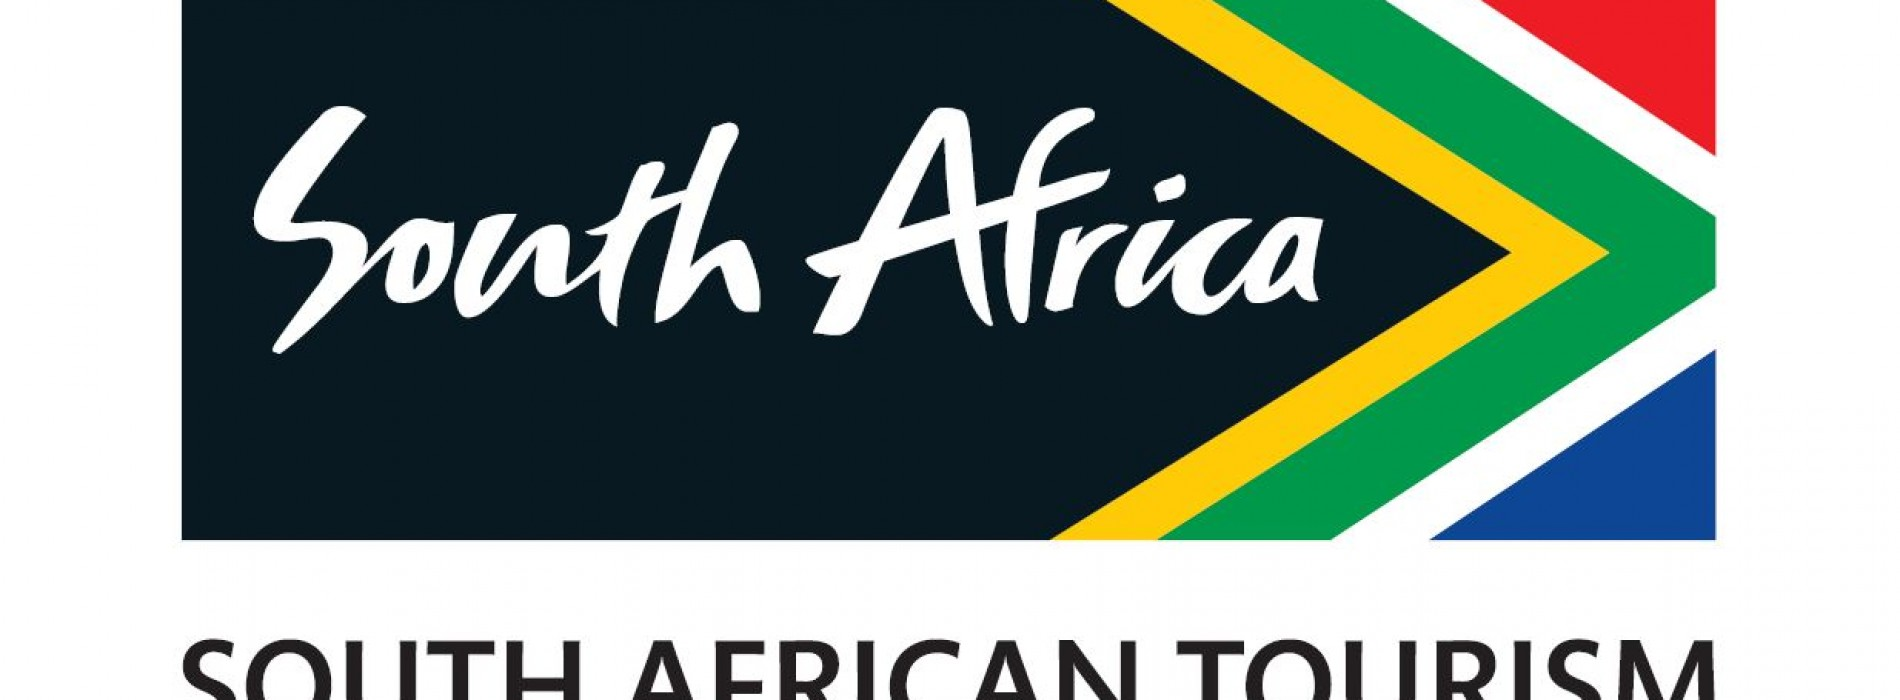 South African Tourism trade delegation arrives in India to define targets and strategy for 2018